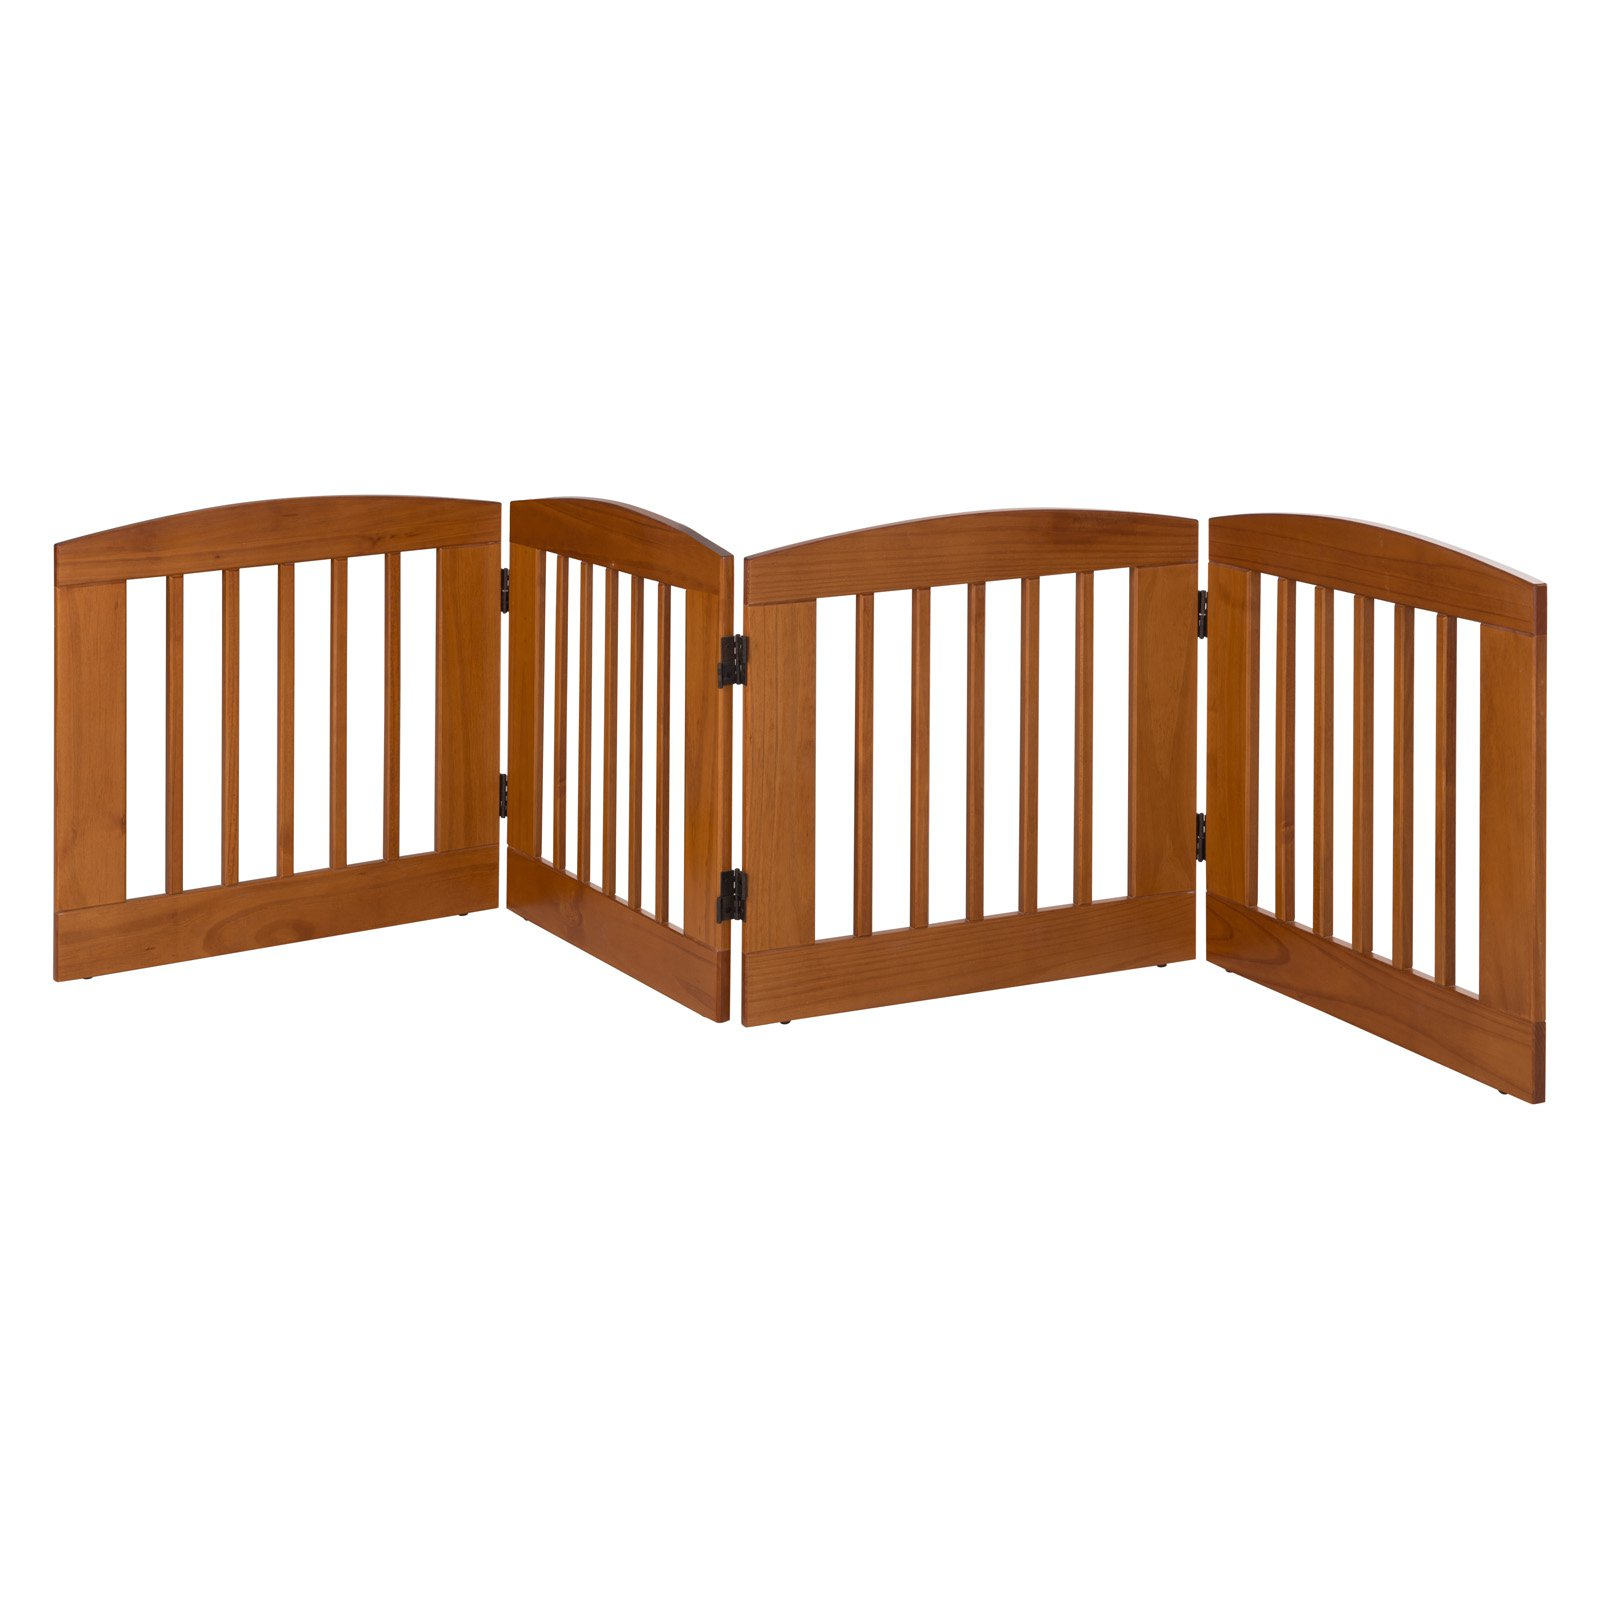 Ruffluv 4 Panel Expansion Pet Gate